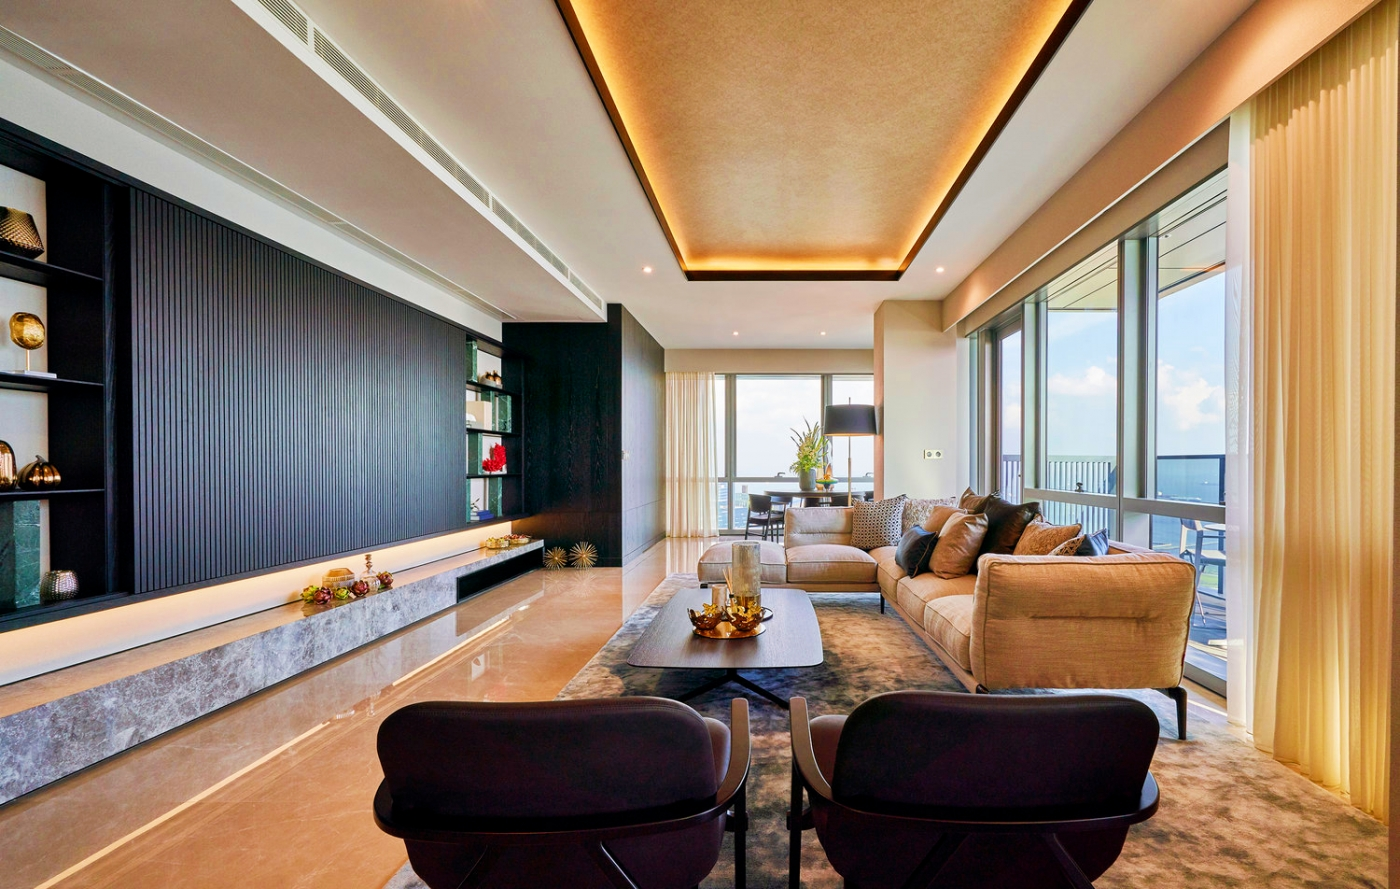 singapore penthouse Inside A $14 Million Singapore Penthouse: The Wallich Residence By Superfat Designs Inside A 14 Million Singapore Penthouse The Wallich Residence By Superfat Designs feature image 1400x889